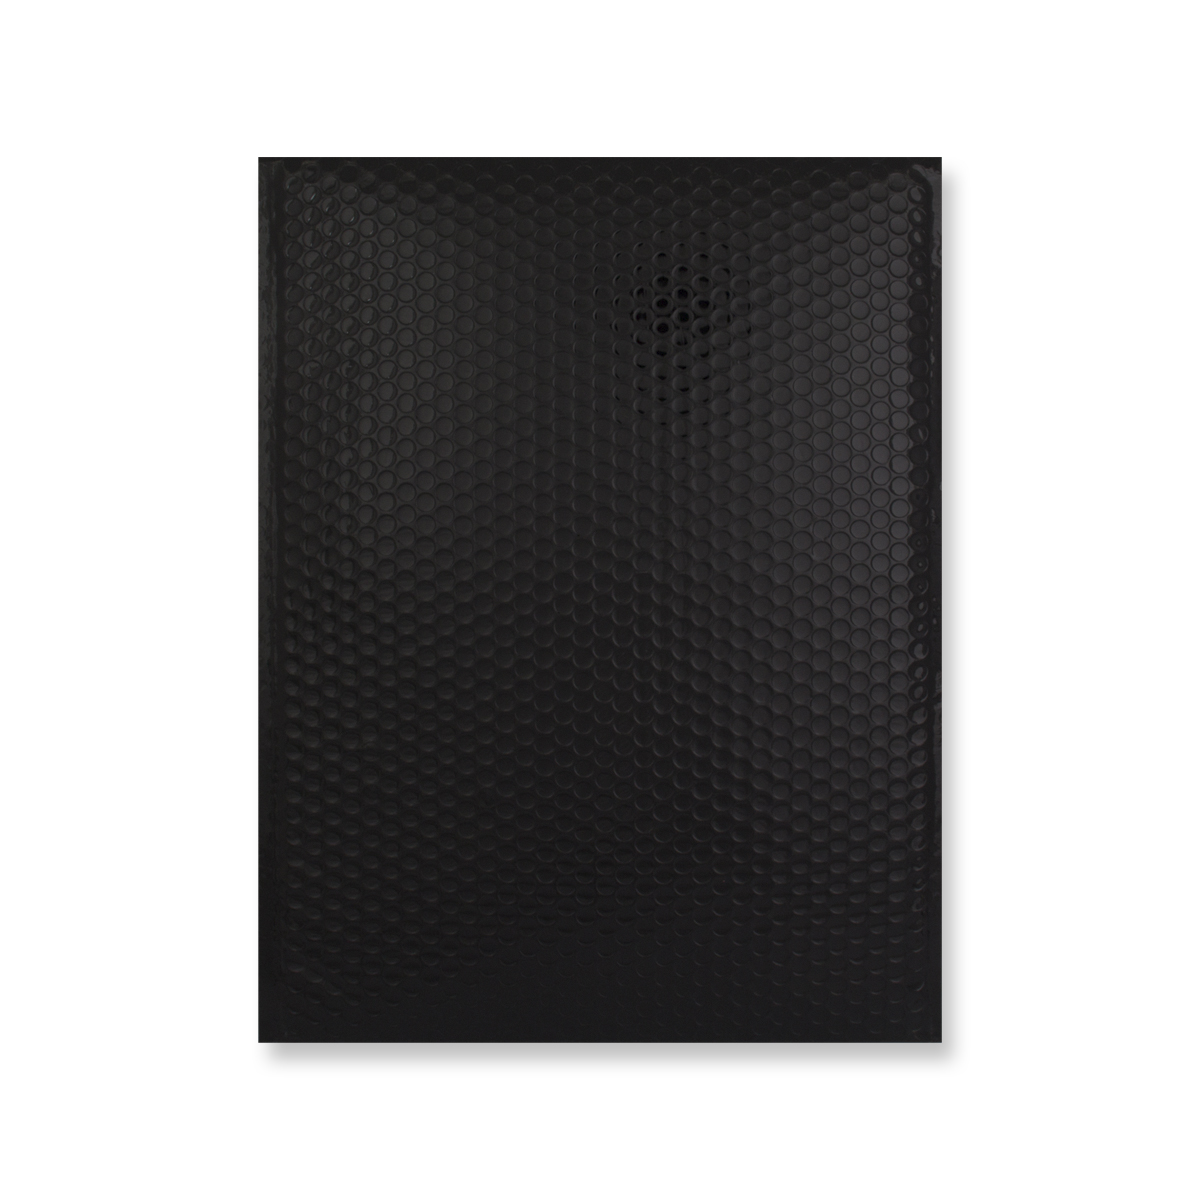 C3 GLOSS METALLIC BLACK PADDED ENVELOPES (450 x 320MM)